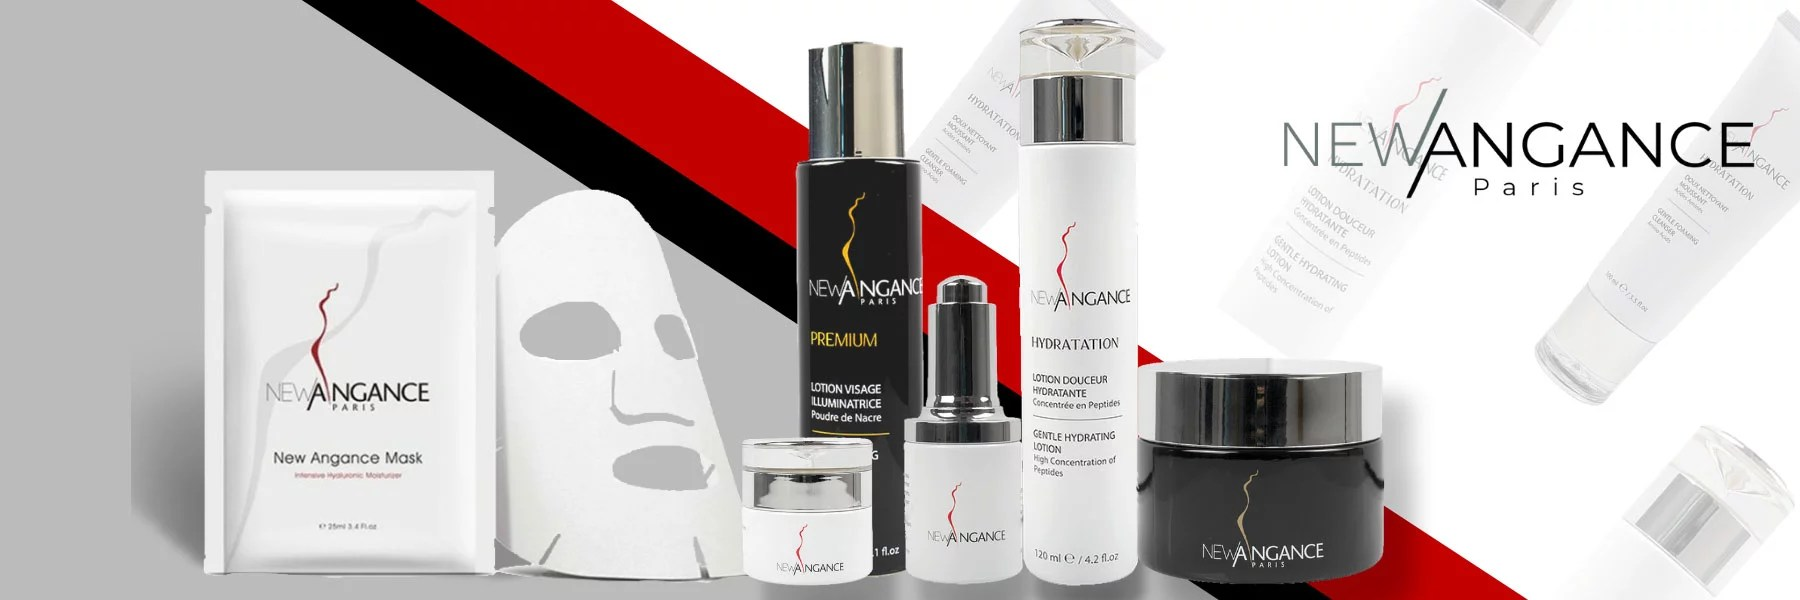 New-Angance_website_banner_1800x600